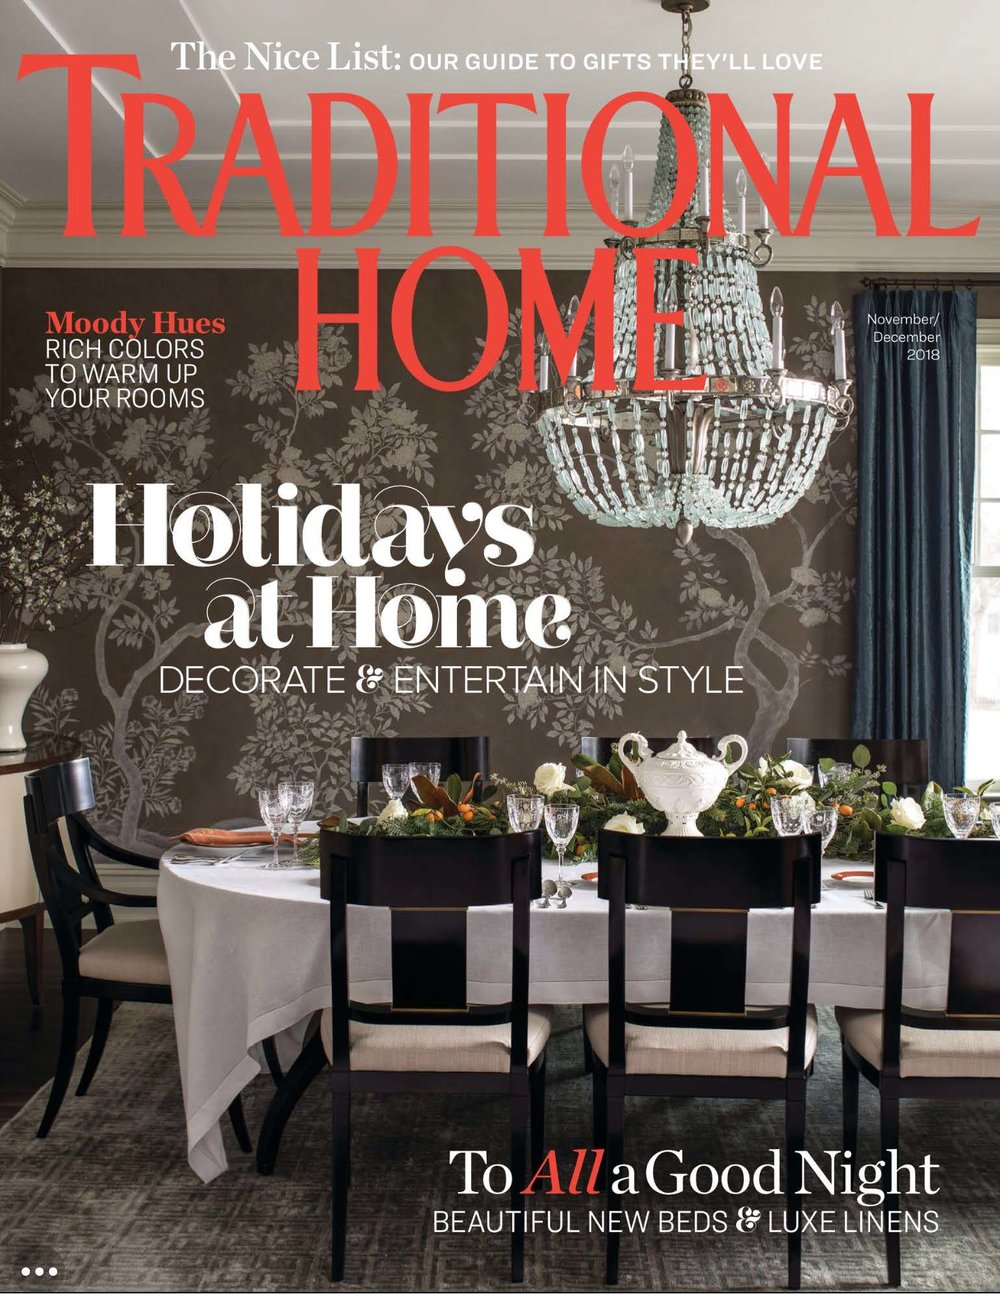 Traditional Home - November.December 2018_Page_01.jpg